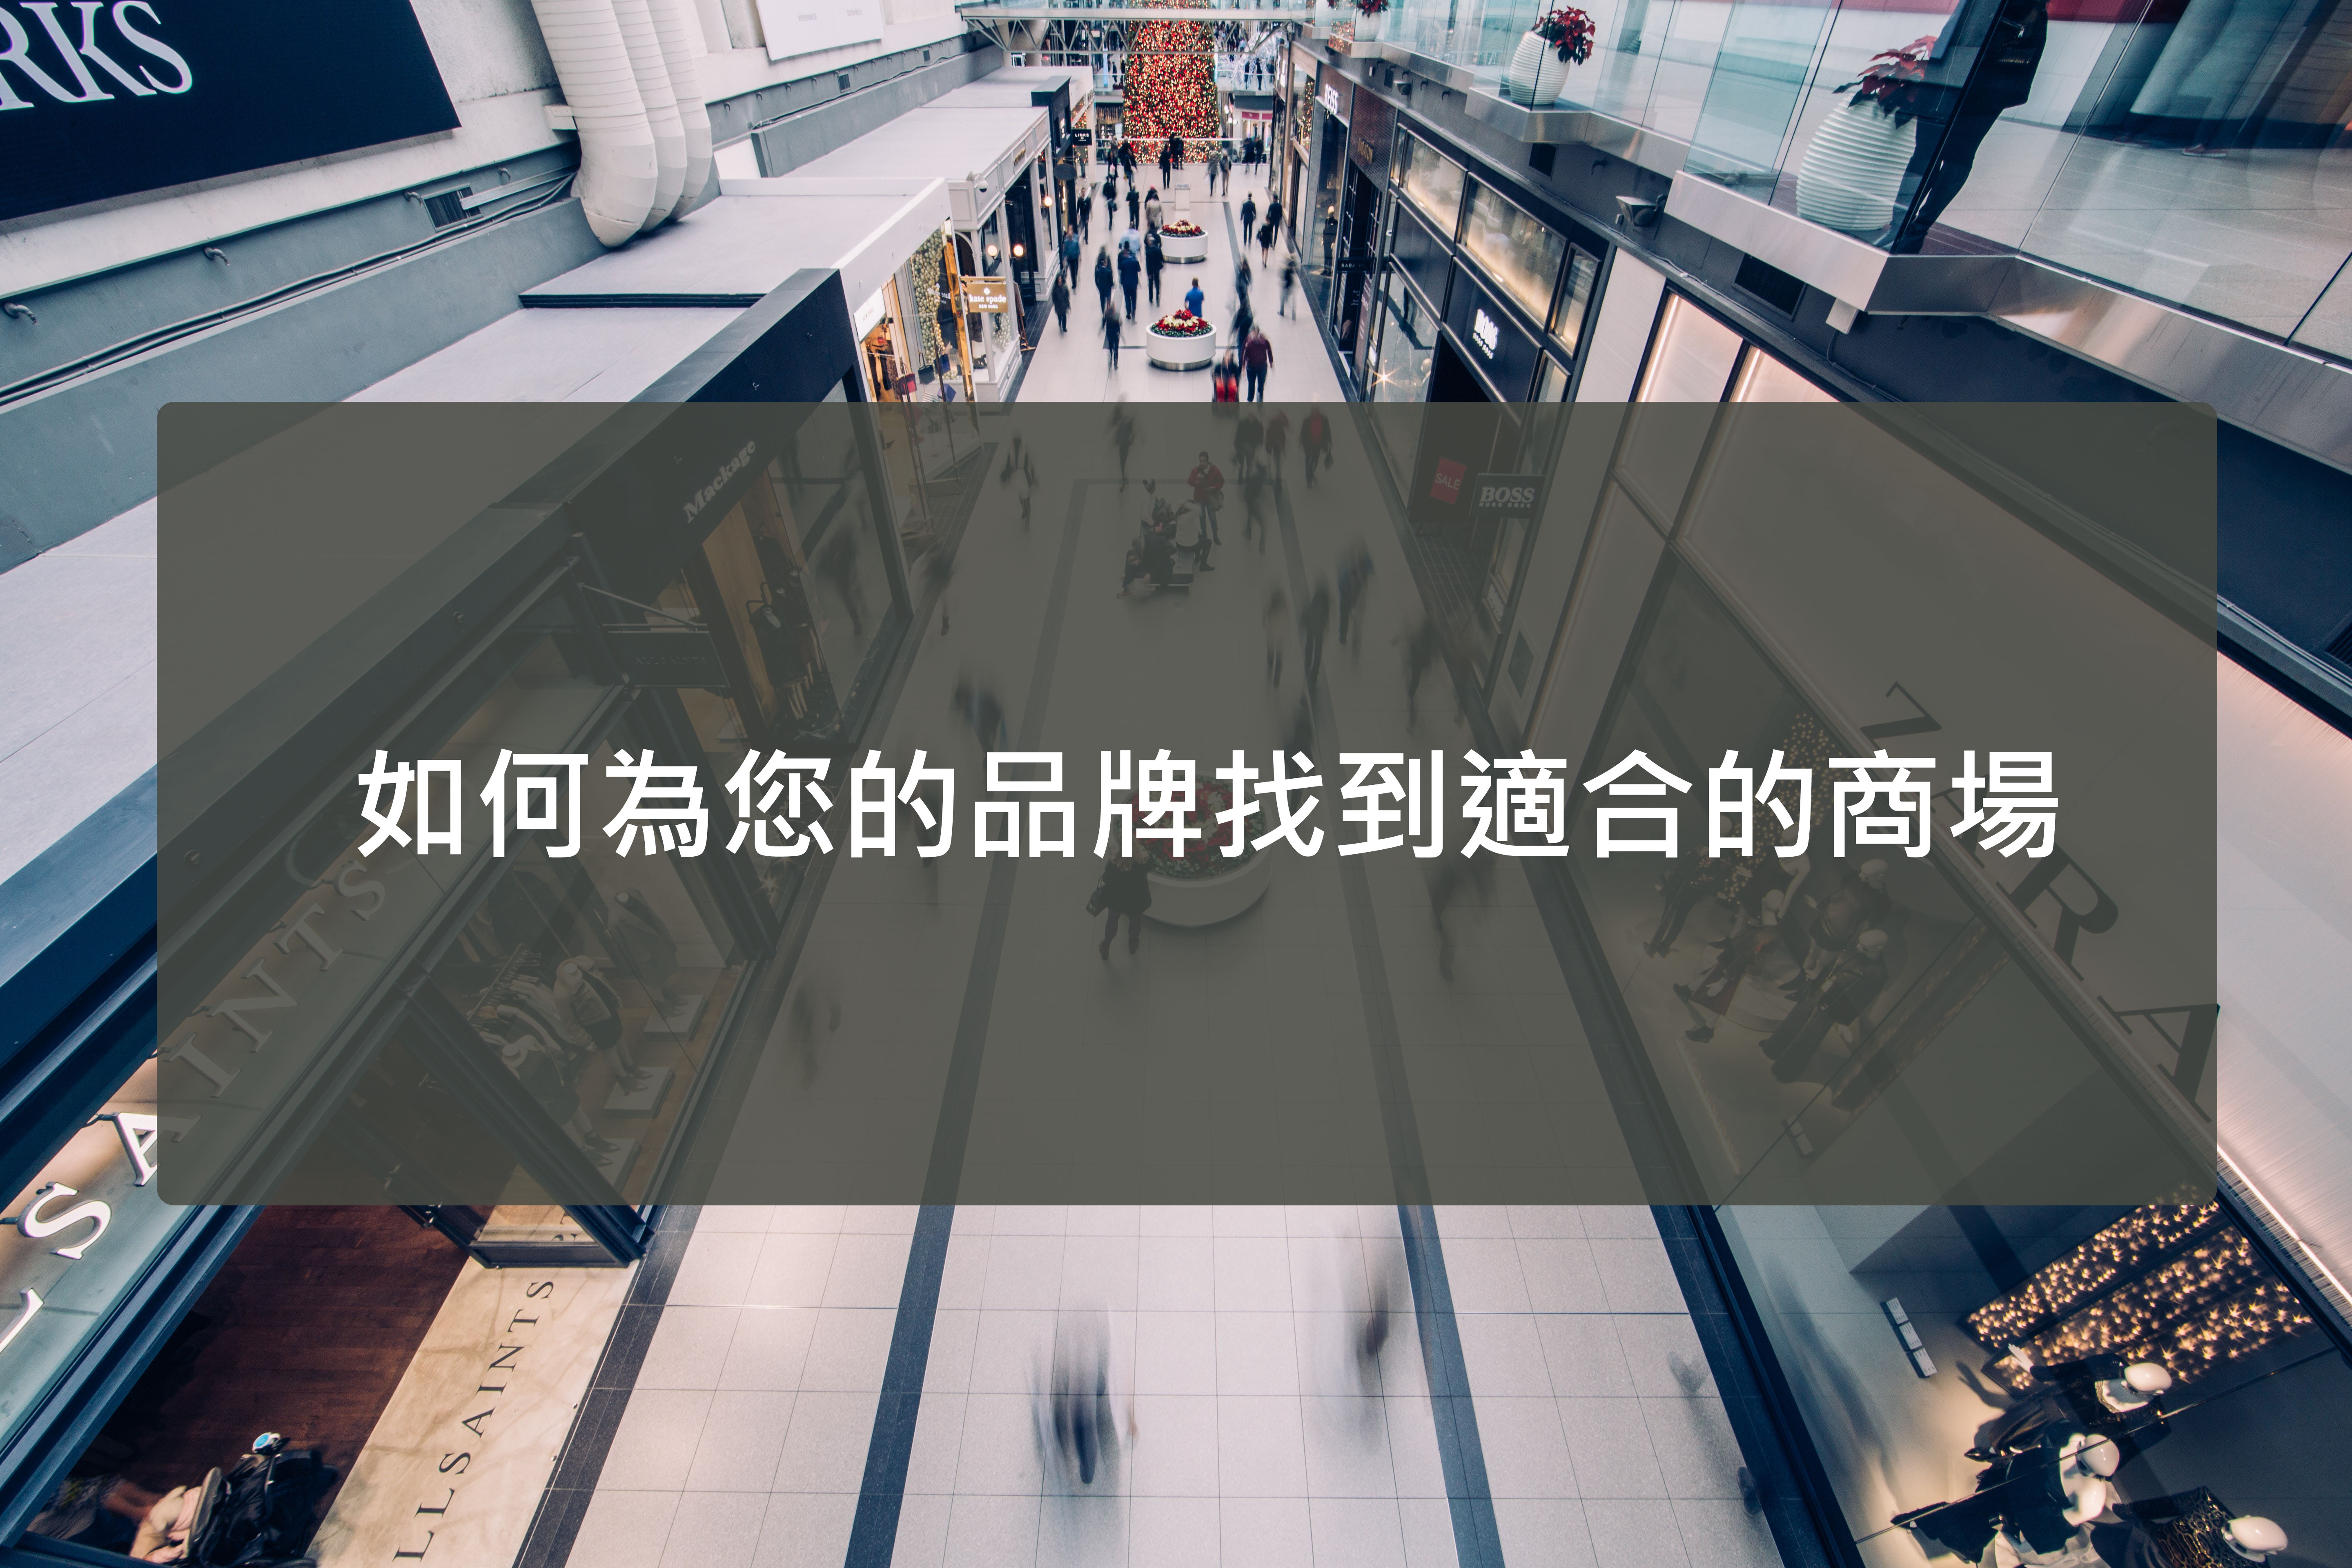 commerce-crown-group-374894